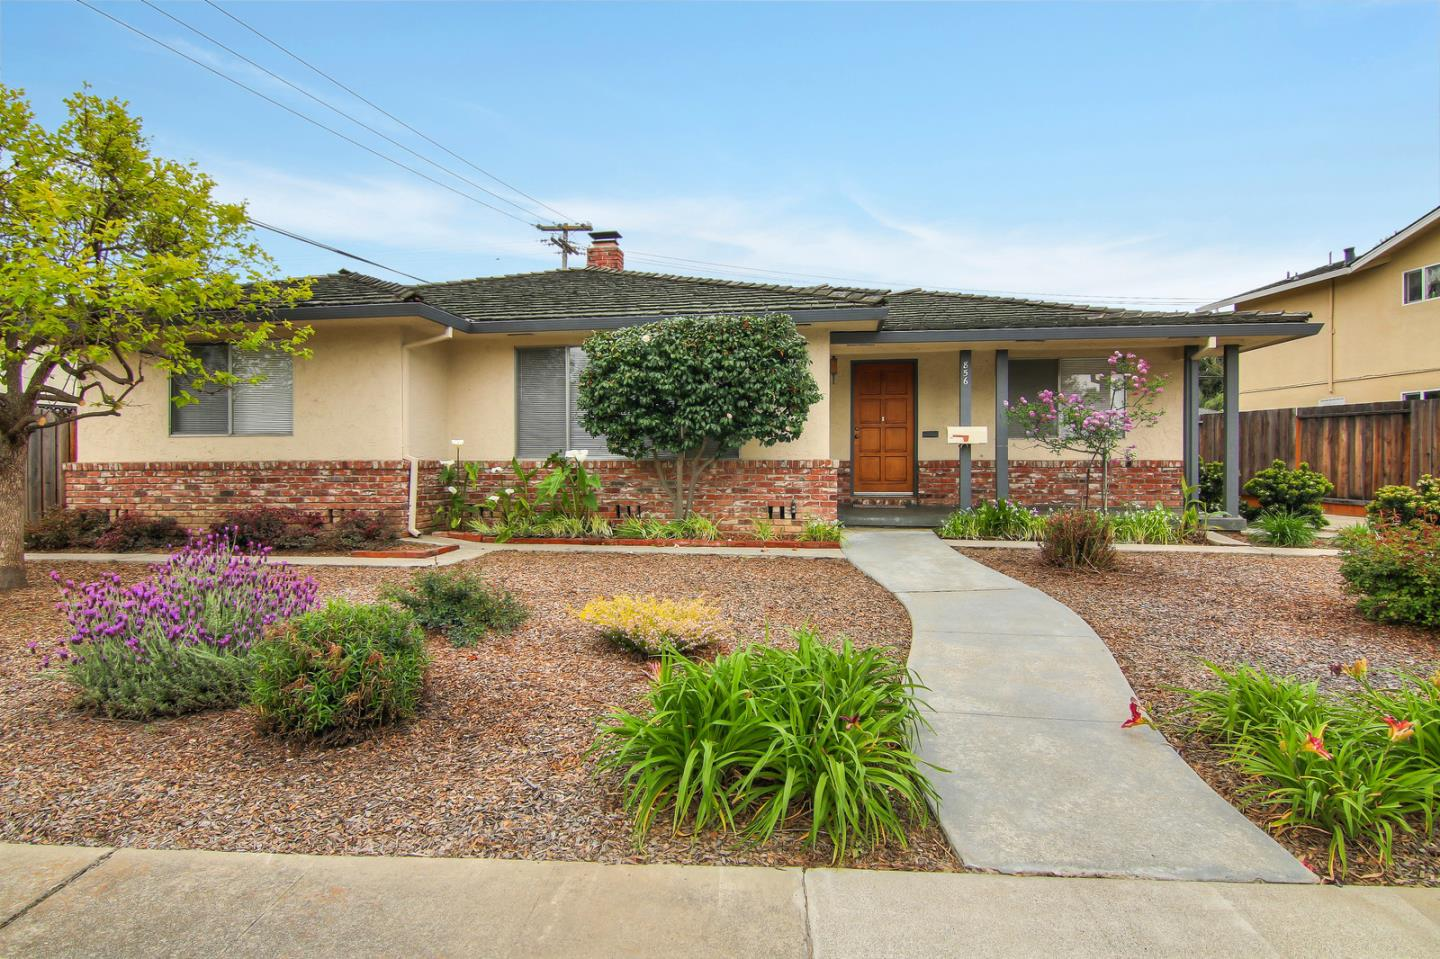 856 RADCLIFF WAY, SUNNYVALE, CA 94087